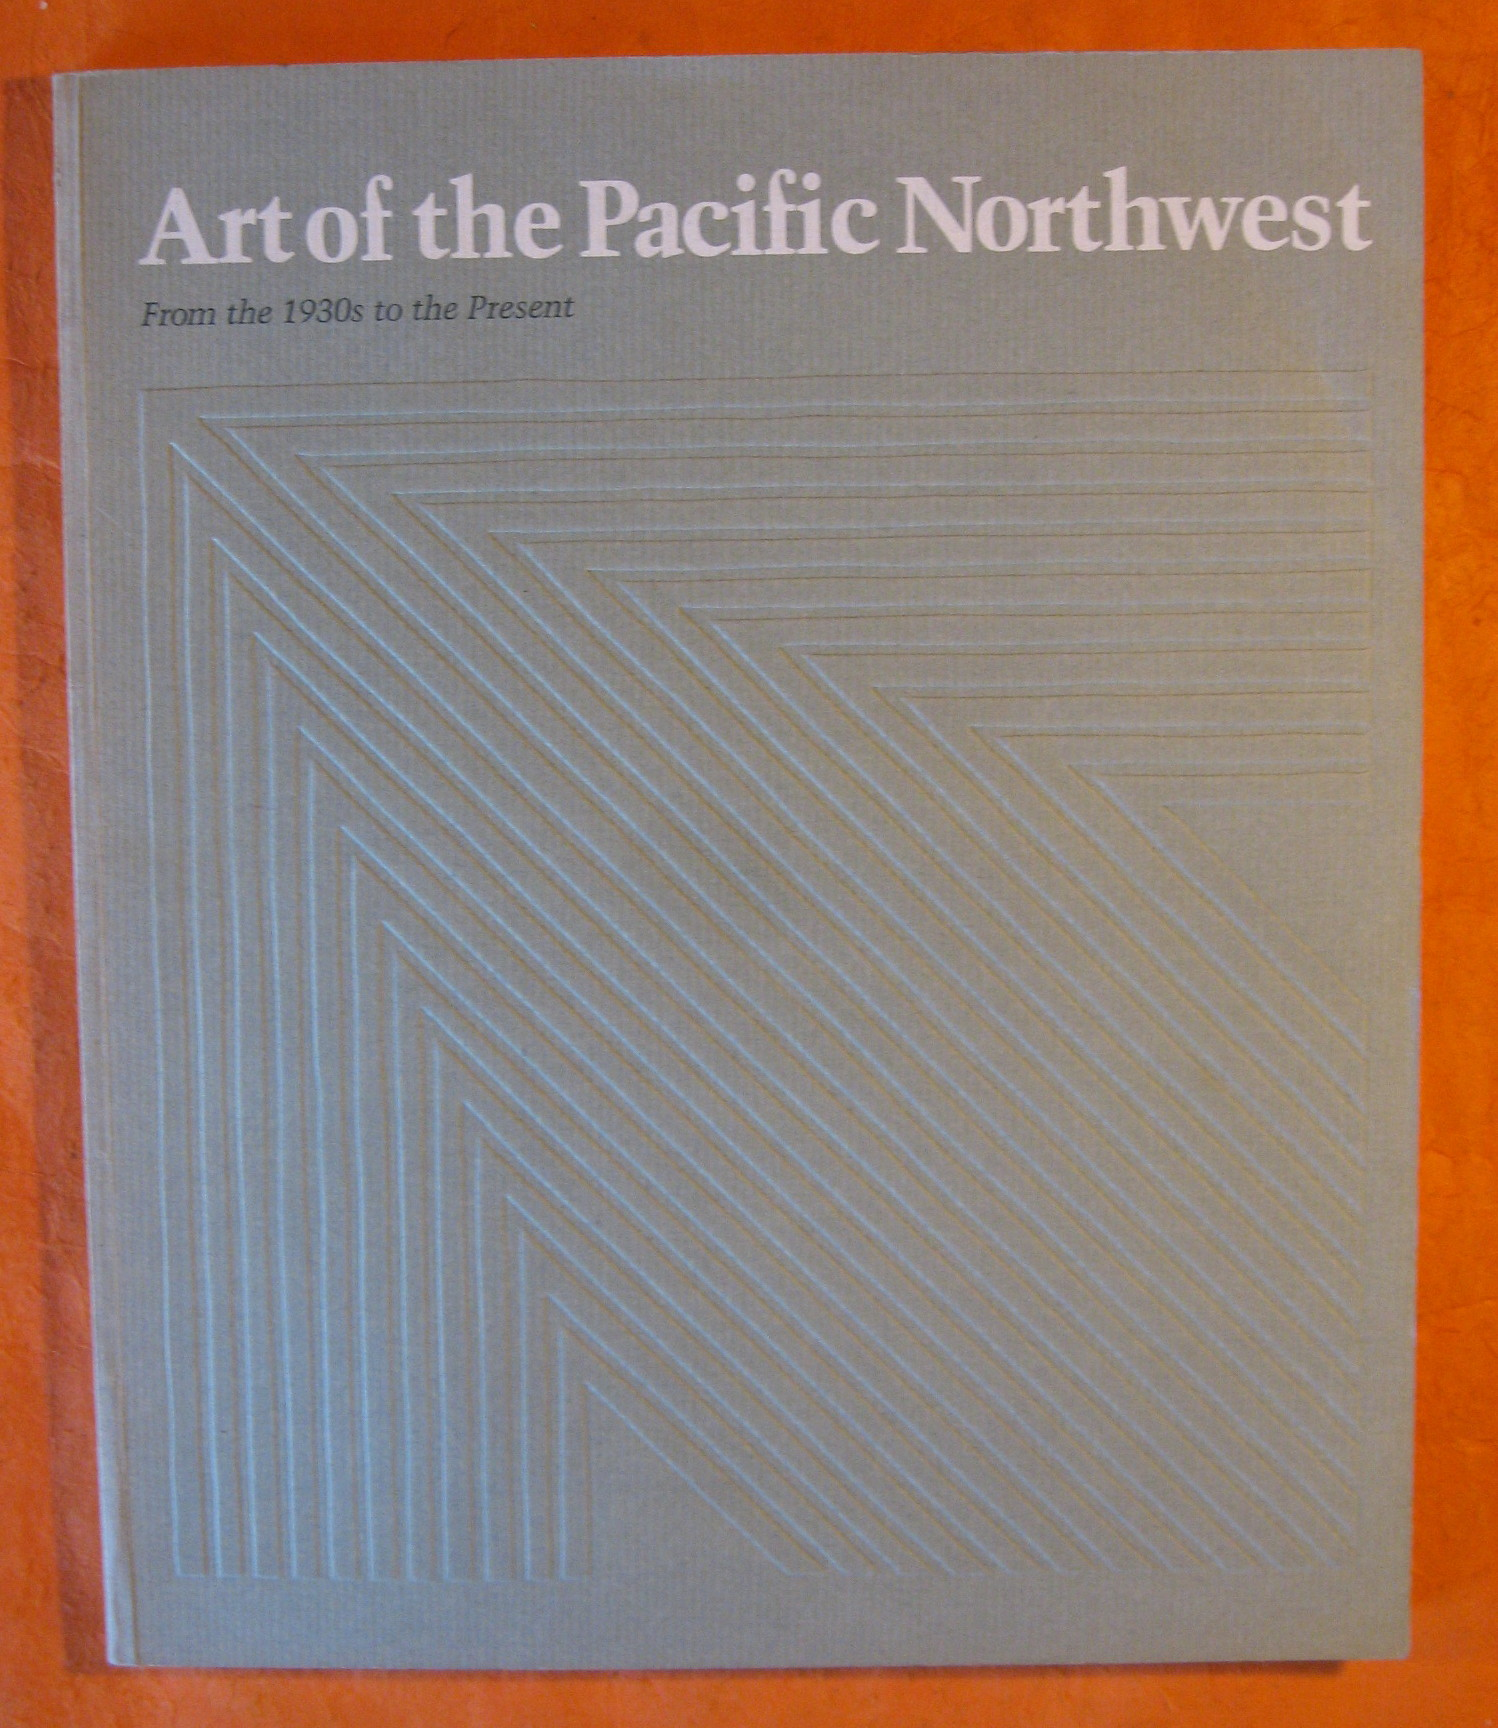 Art of the Pacific Northwest From the 1930s to the Present